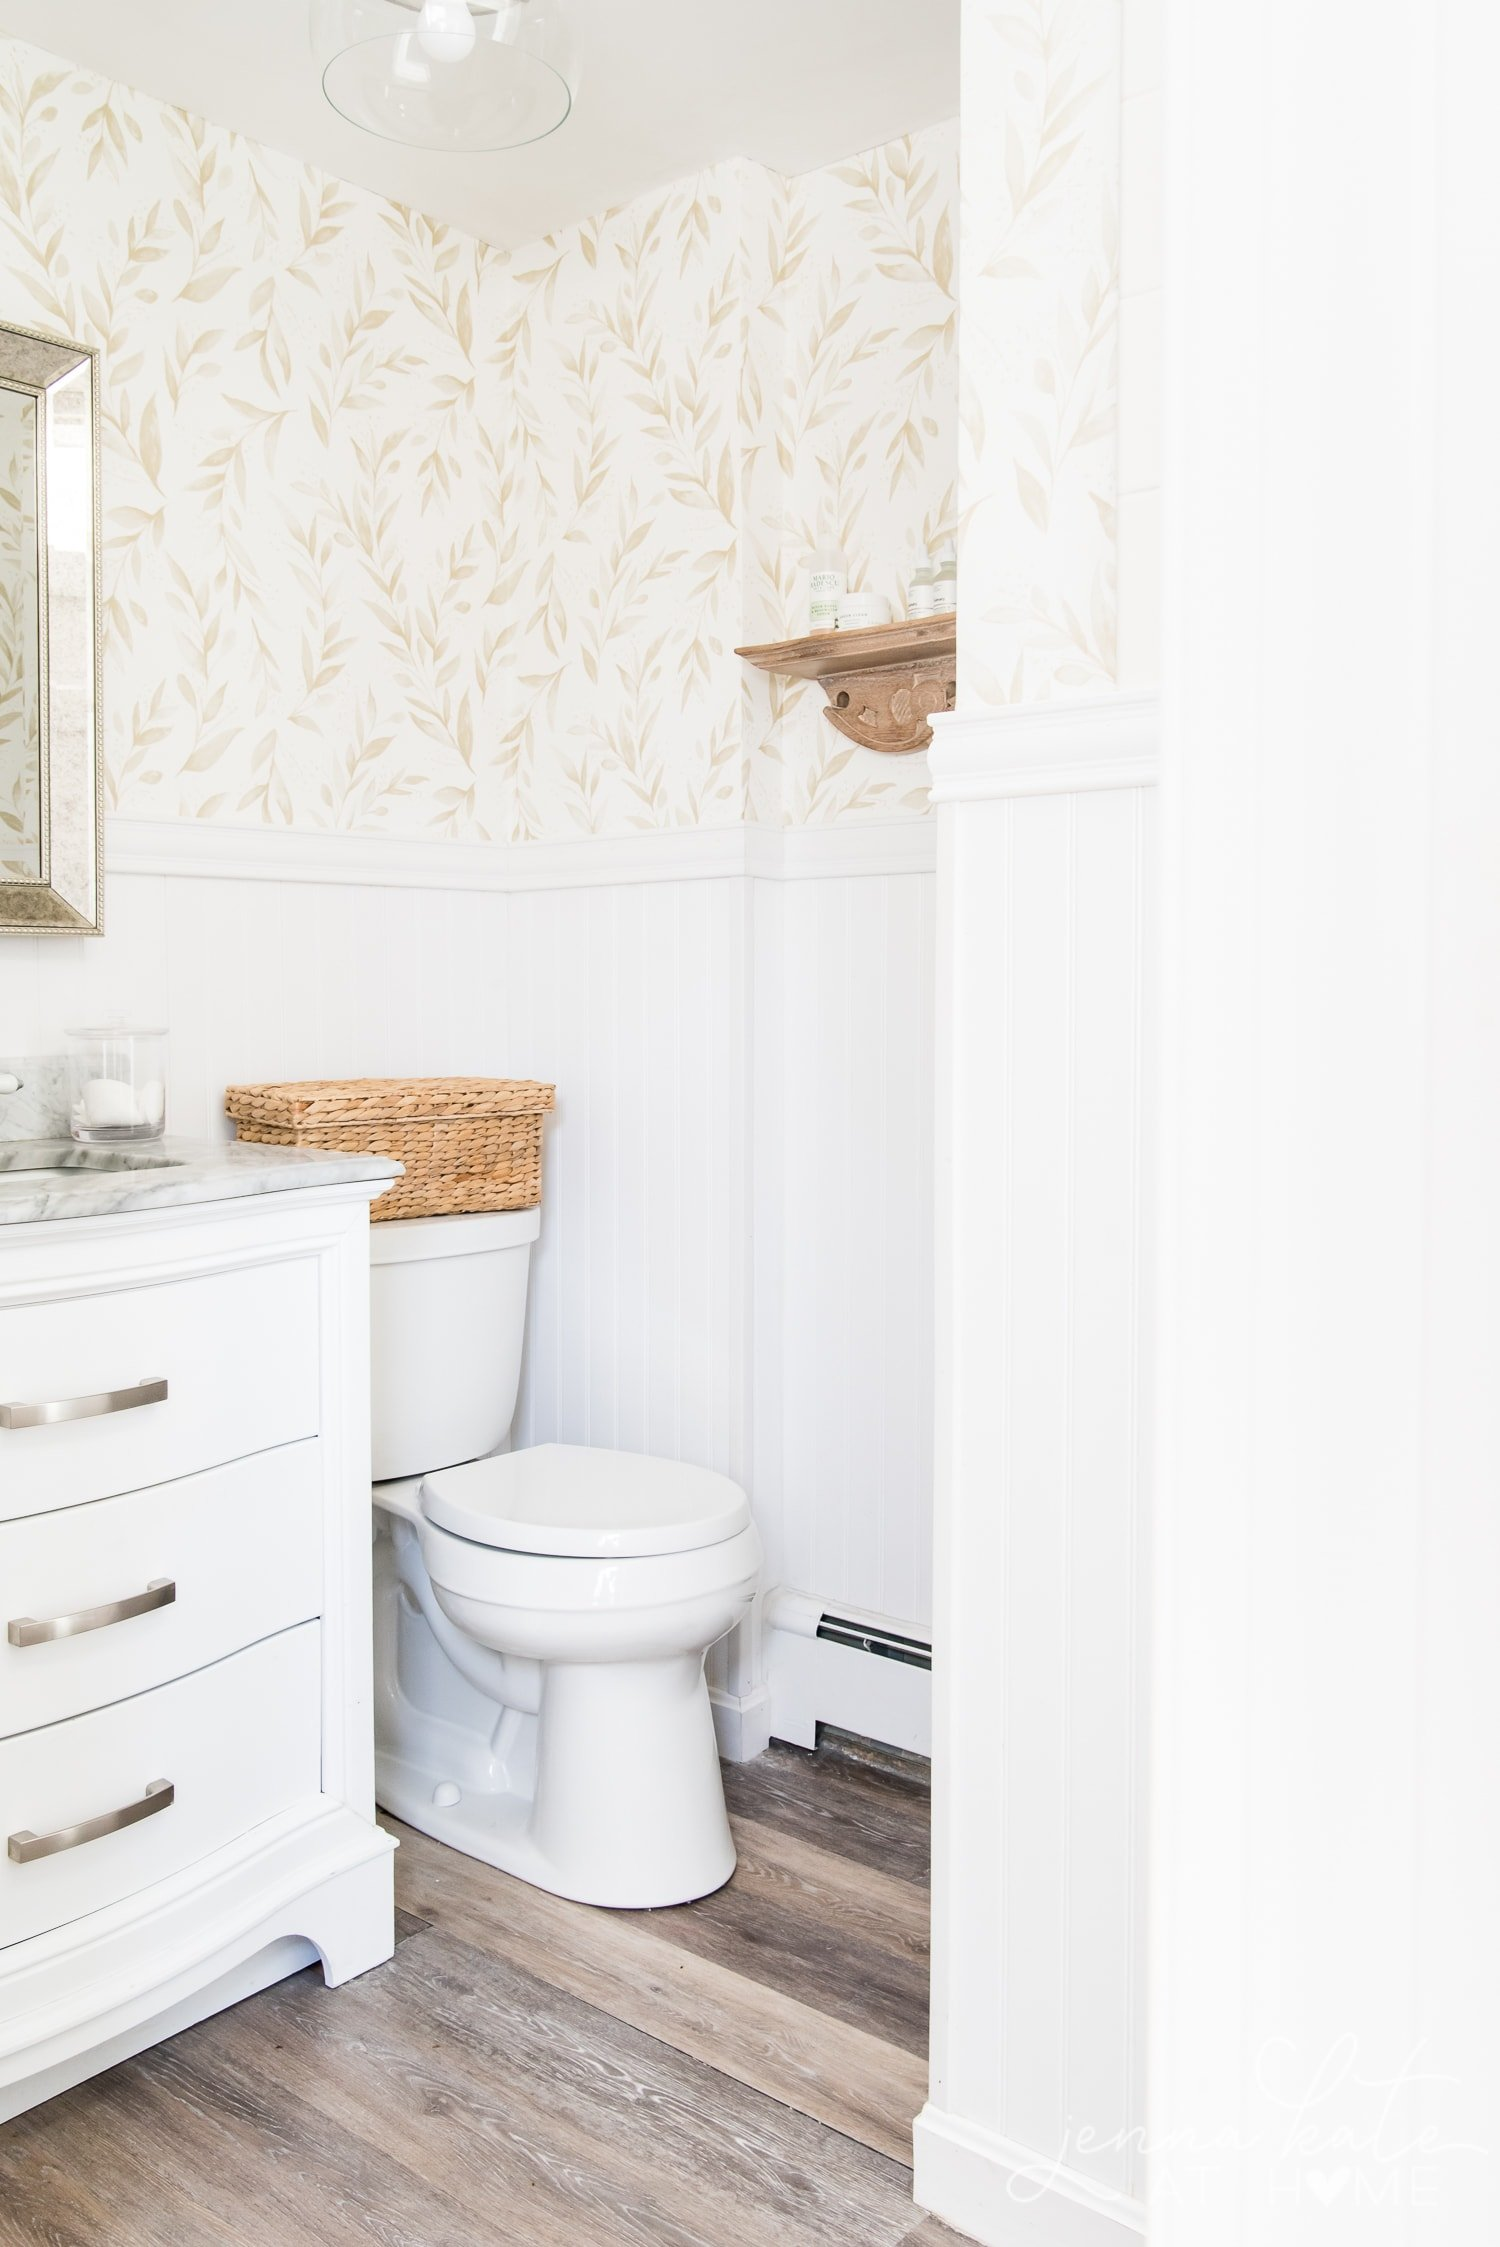 View of bathroom from another angle. Here you can see the toilet with wicker basket on top as well as the beadboard and wallpaper on the walls.